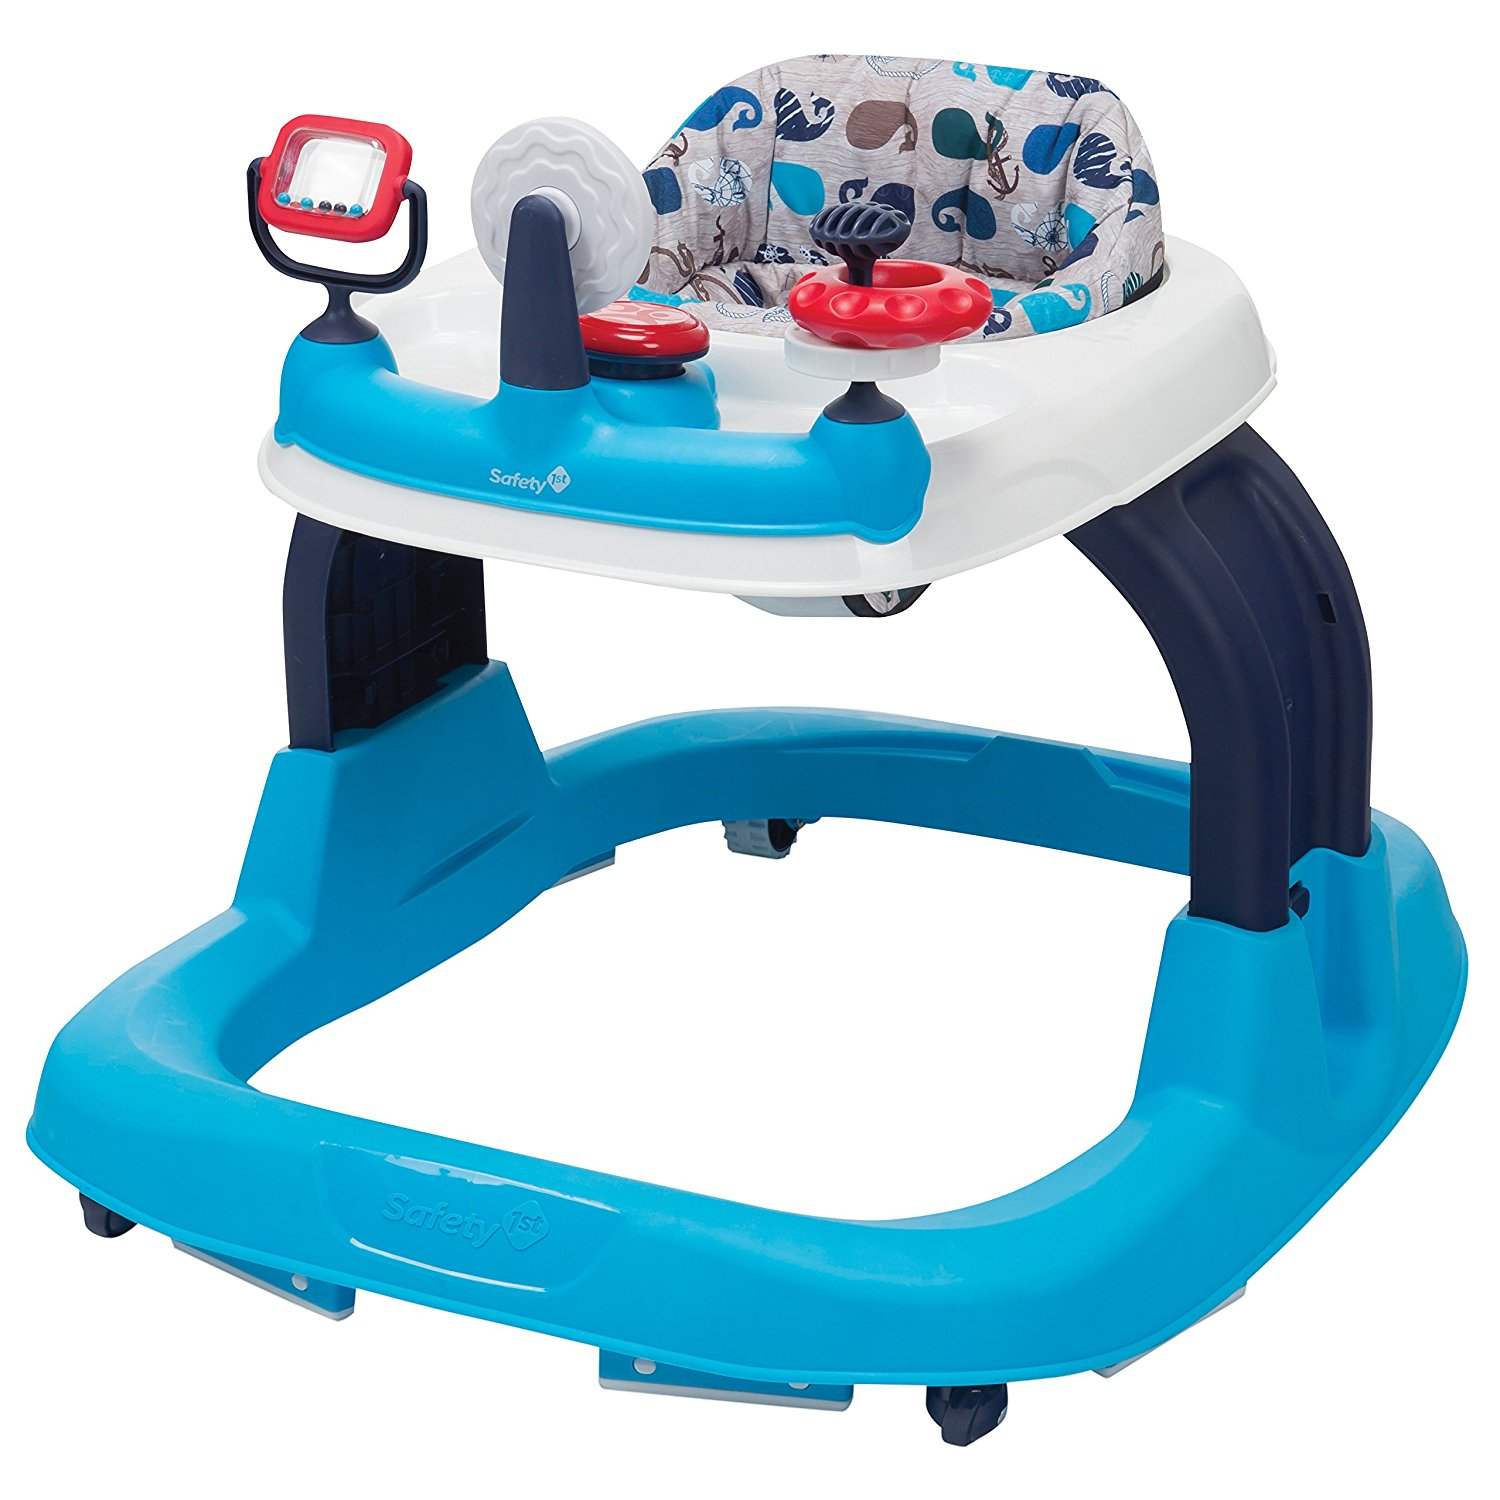 Ready-Set-Walk Walker, Nantucket, 3 toys with multiple developmental activities By Safety 1st